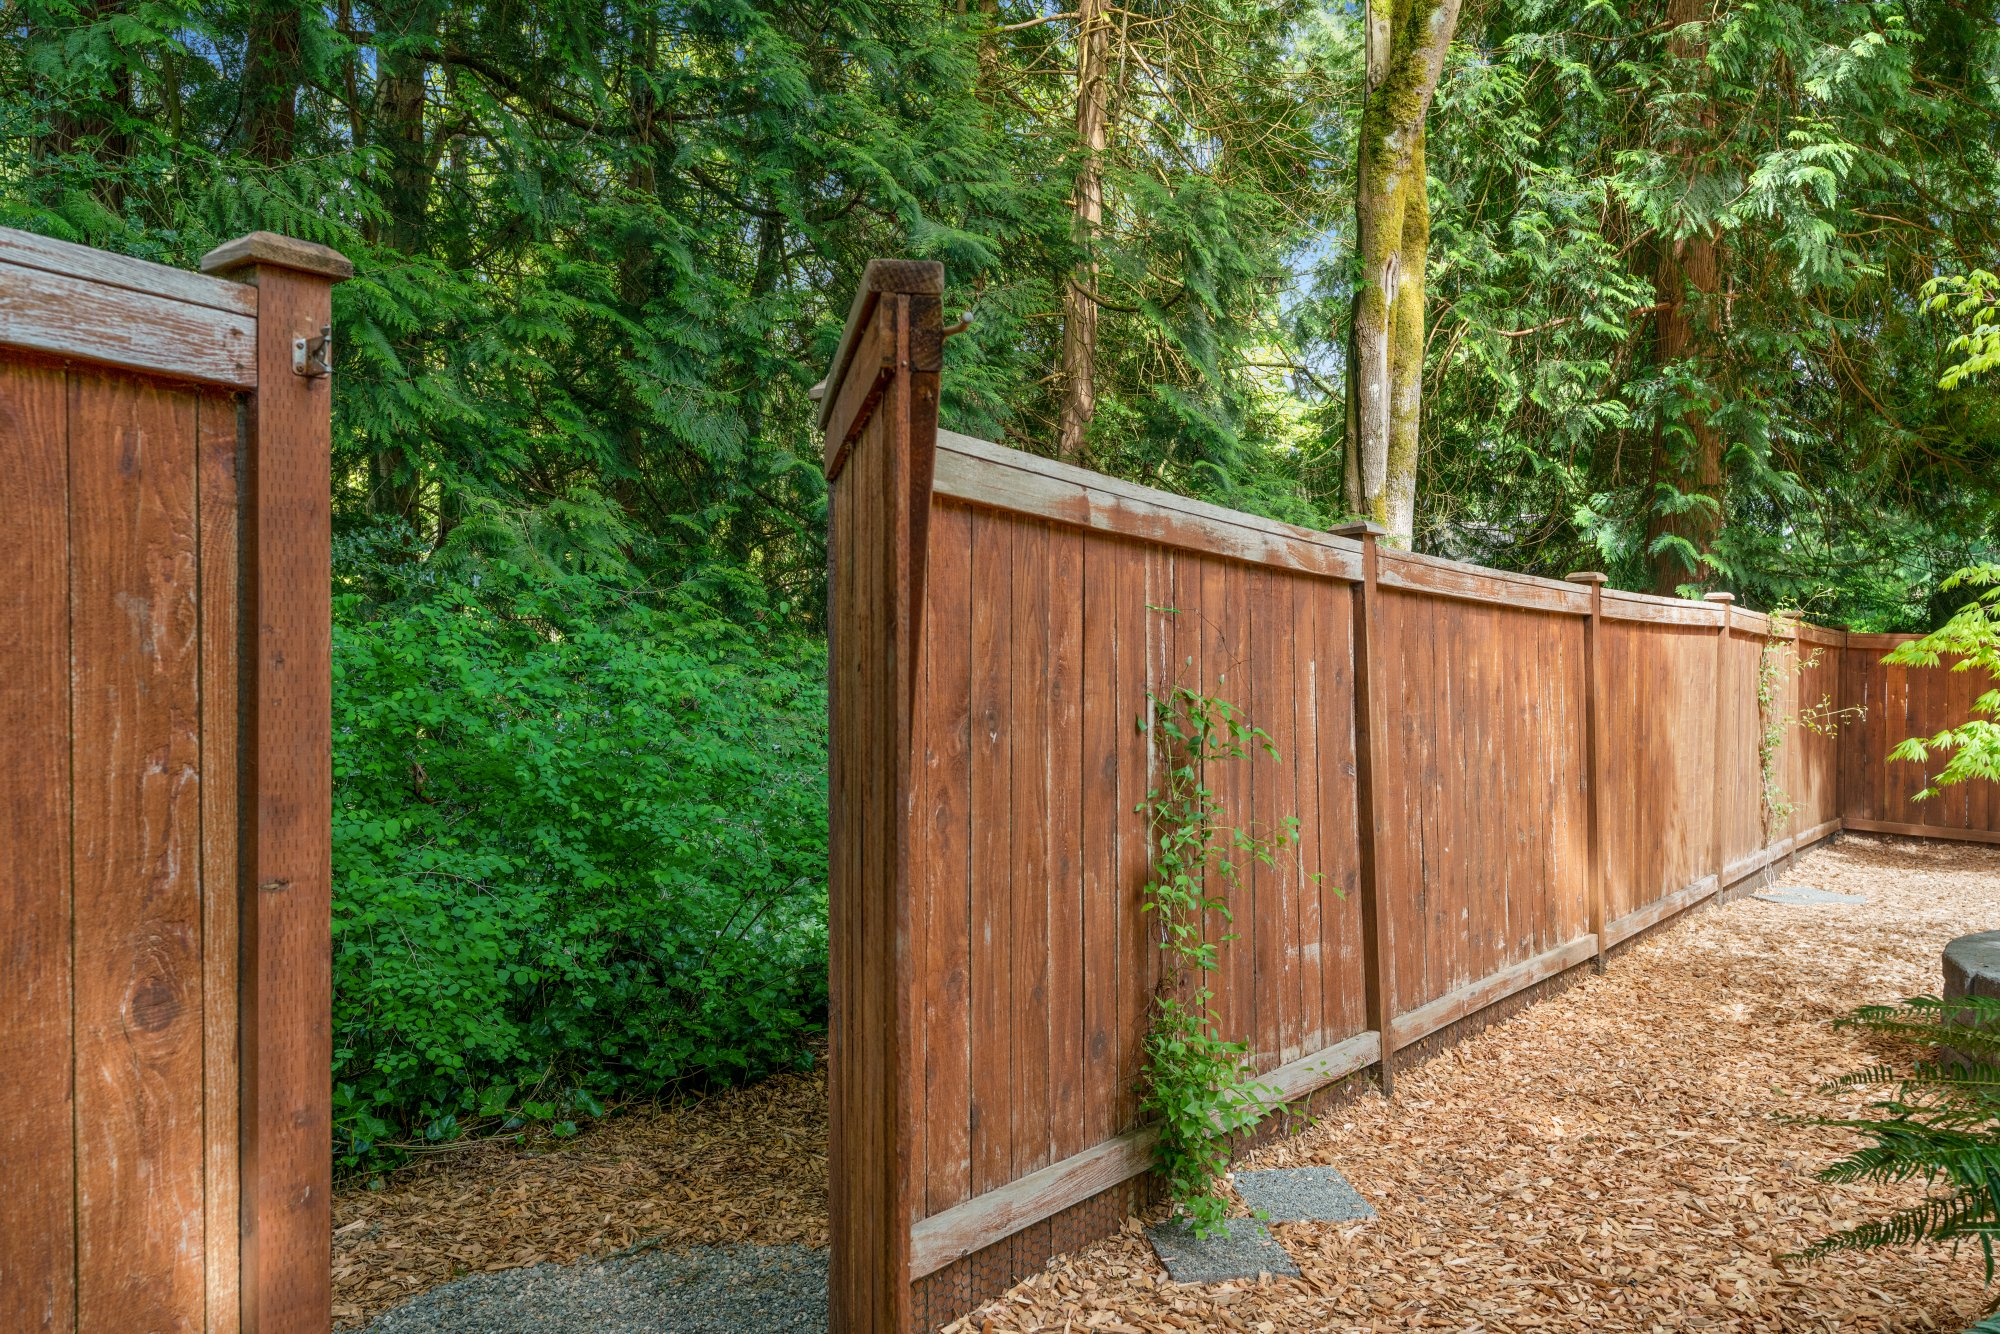 021-2946Northeast178thStreet-LakeForestPark-WA-98155-SMALL